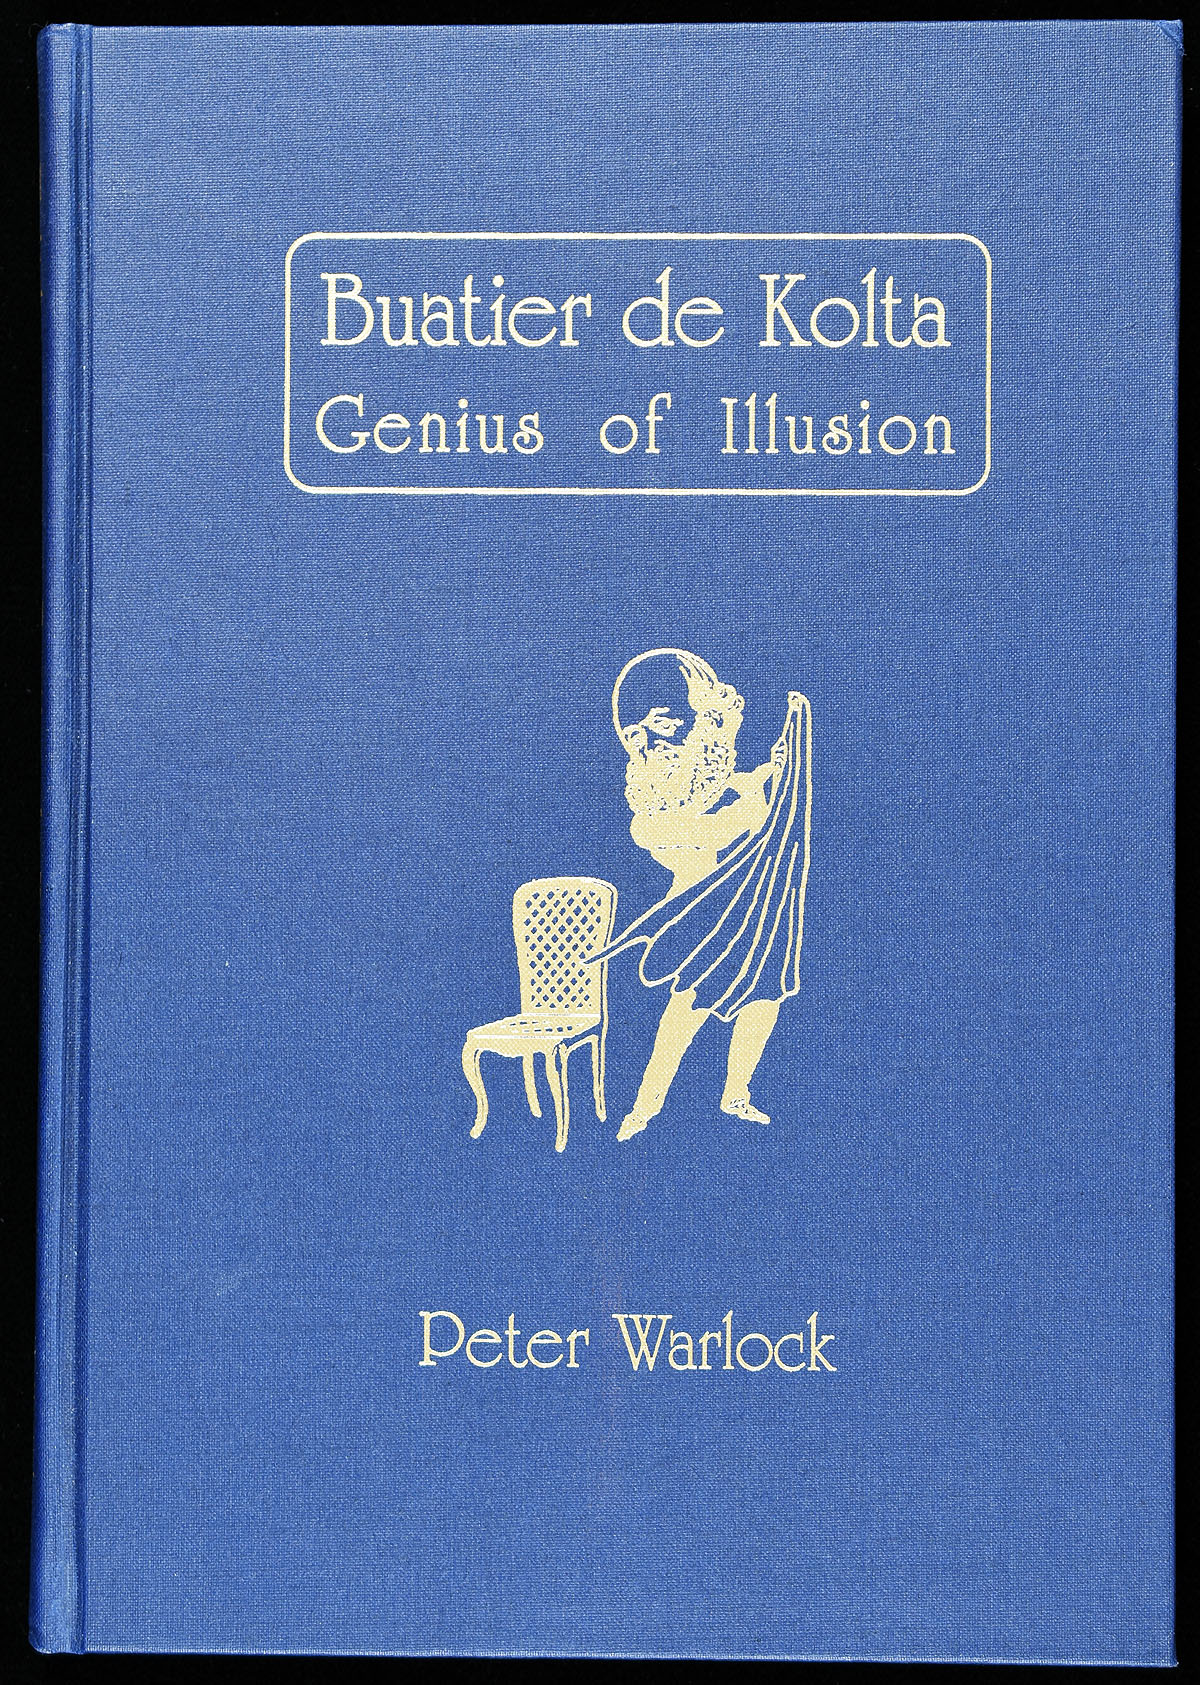 buatier de kolta genius of illusion signed quicker. Black Bedroom Furniture Sets. Home Design Ideas